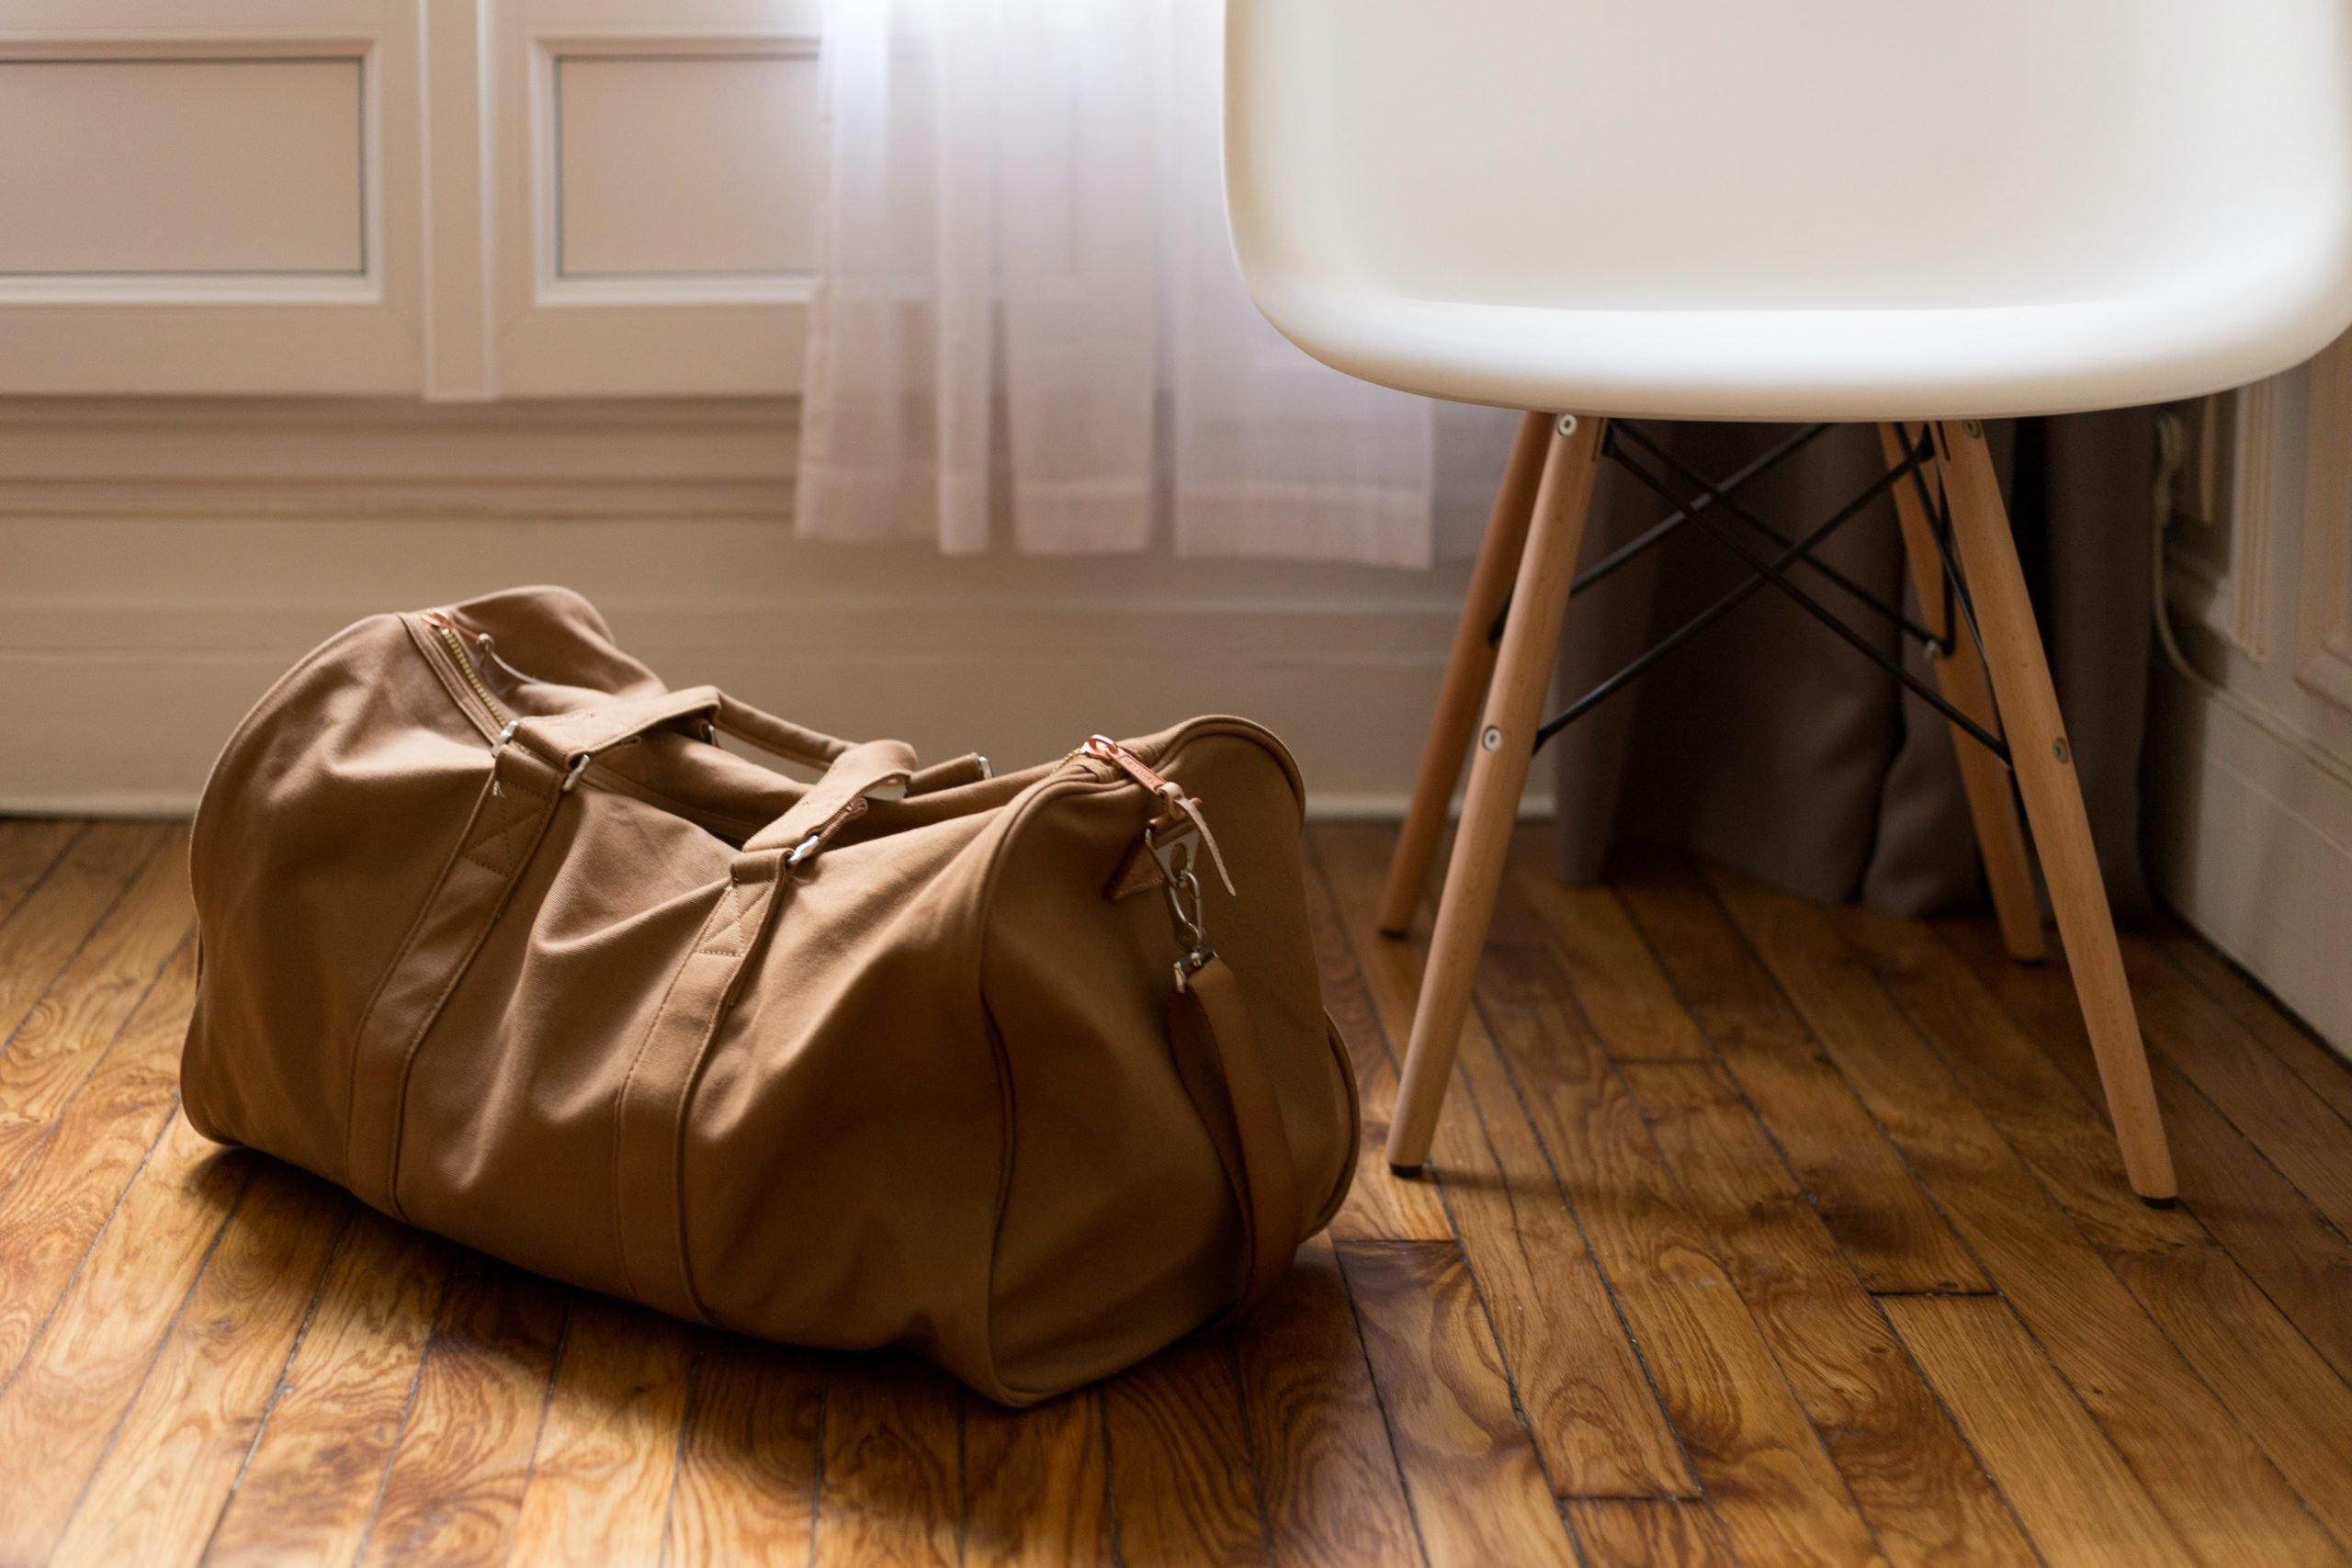 What to pack in a hospital bag before labor